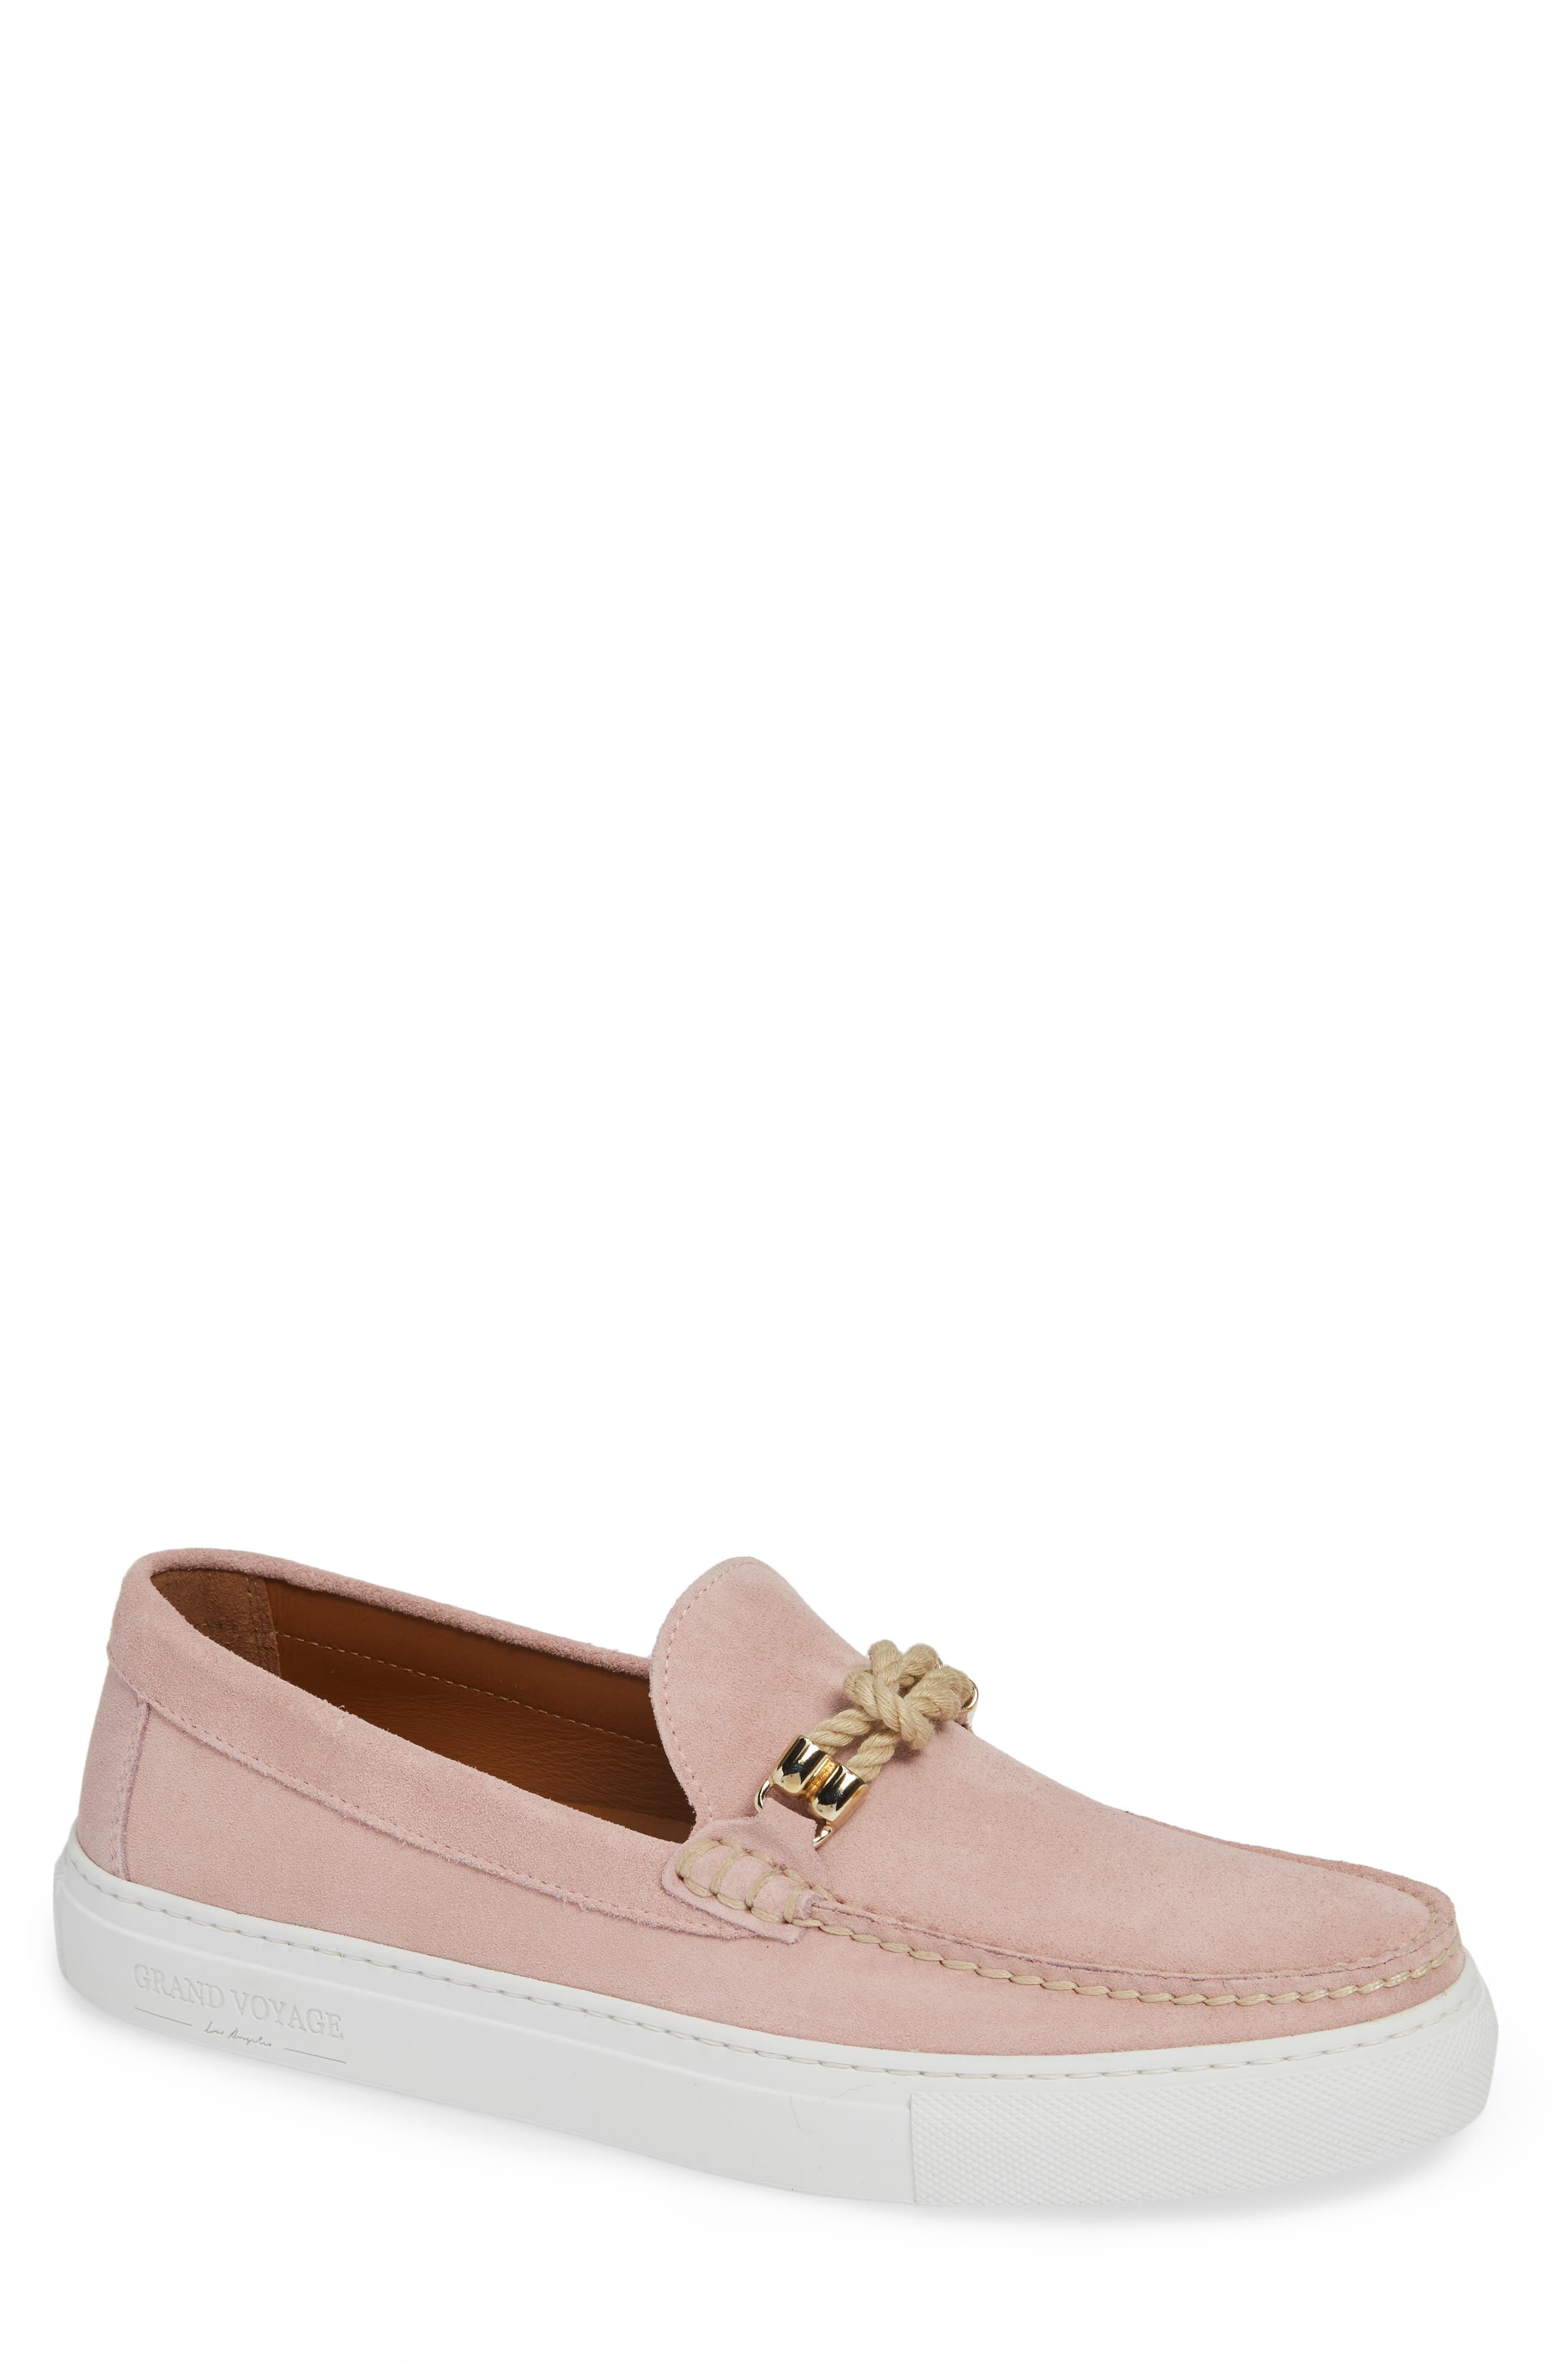 Britton Square Knot Loafer,                             Main thumbnail 1, color,                             ROSE SUEDE